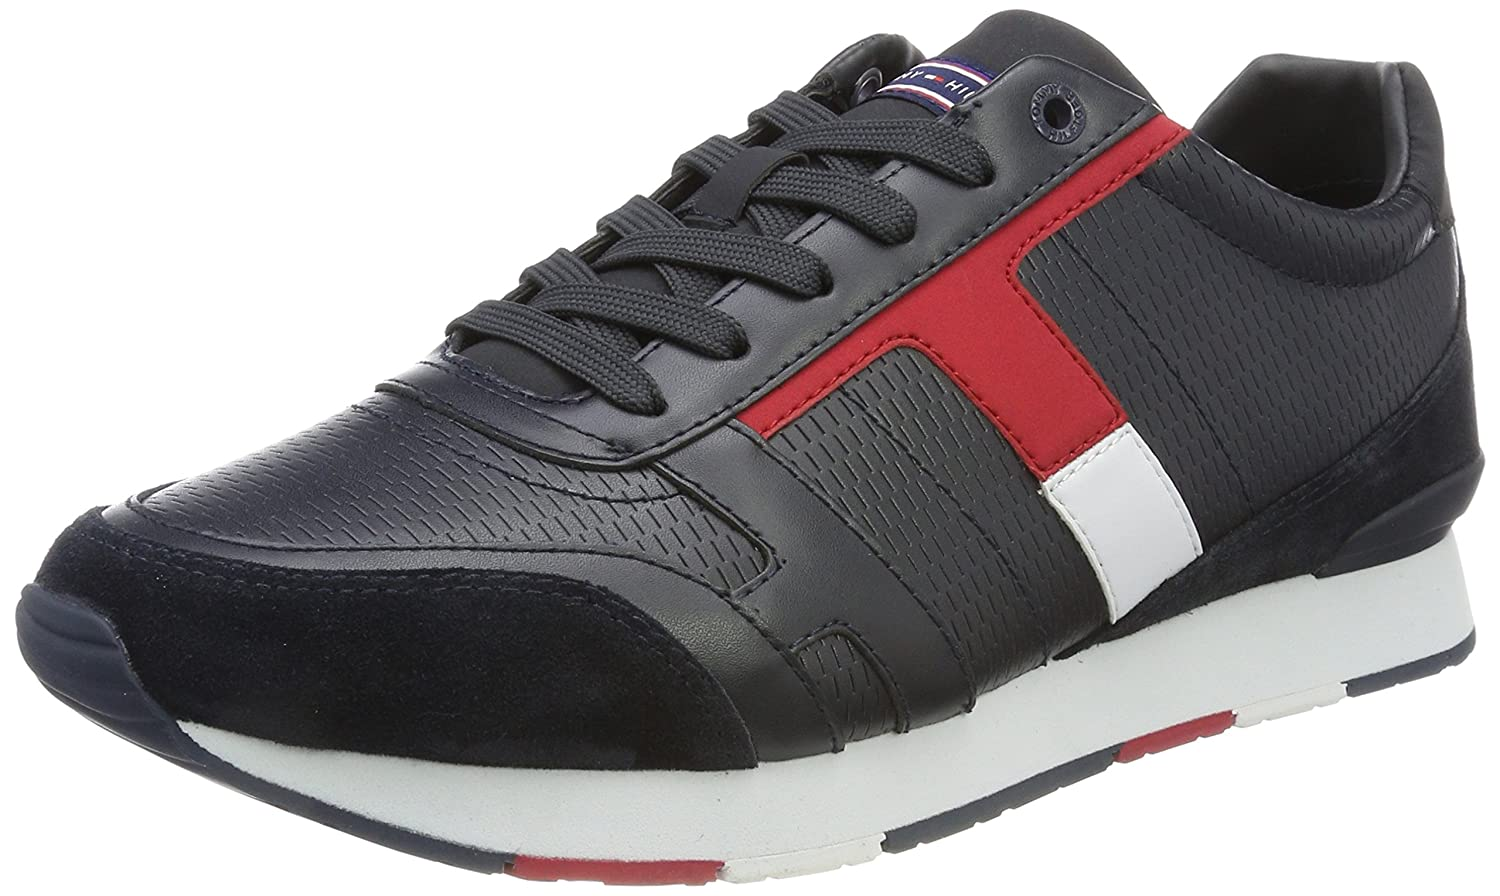 Tommy Hilfiger L2285eeds 2c1, Sneakers Basses Homme